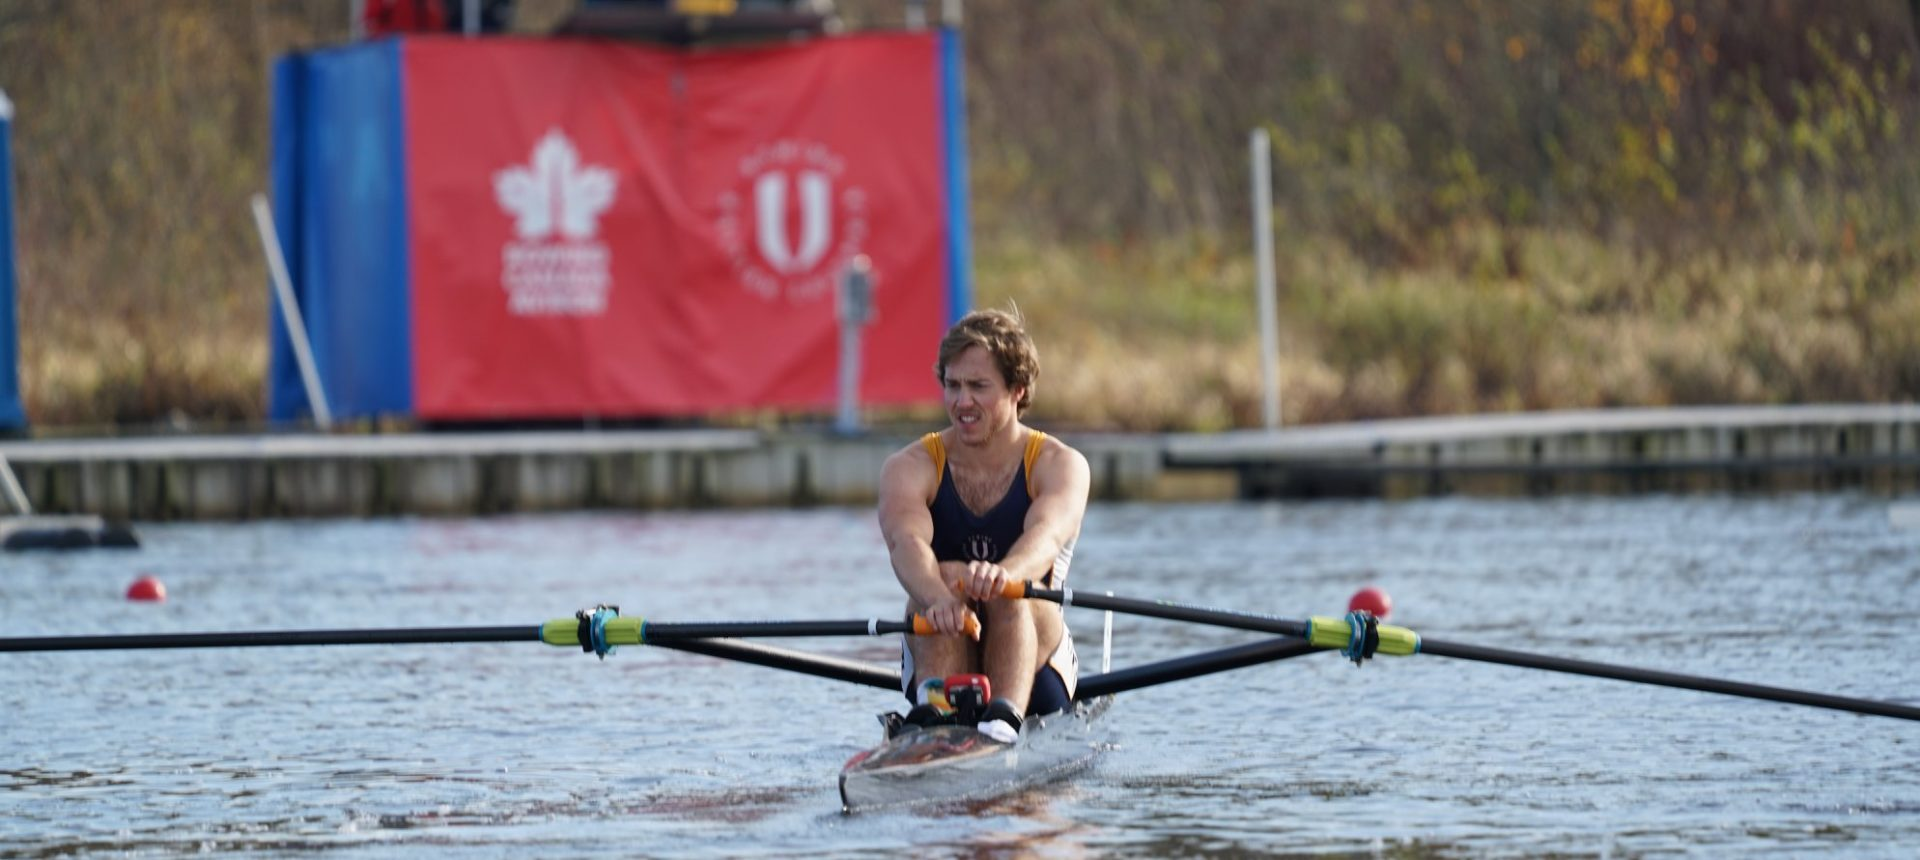 Host the 2020 RCA National Rowing Championships and Canada Cup Regattas